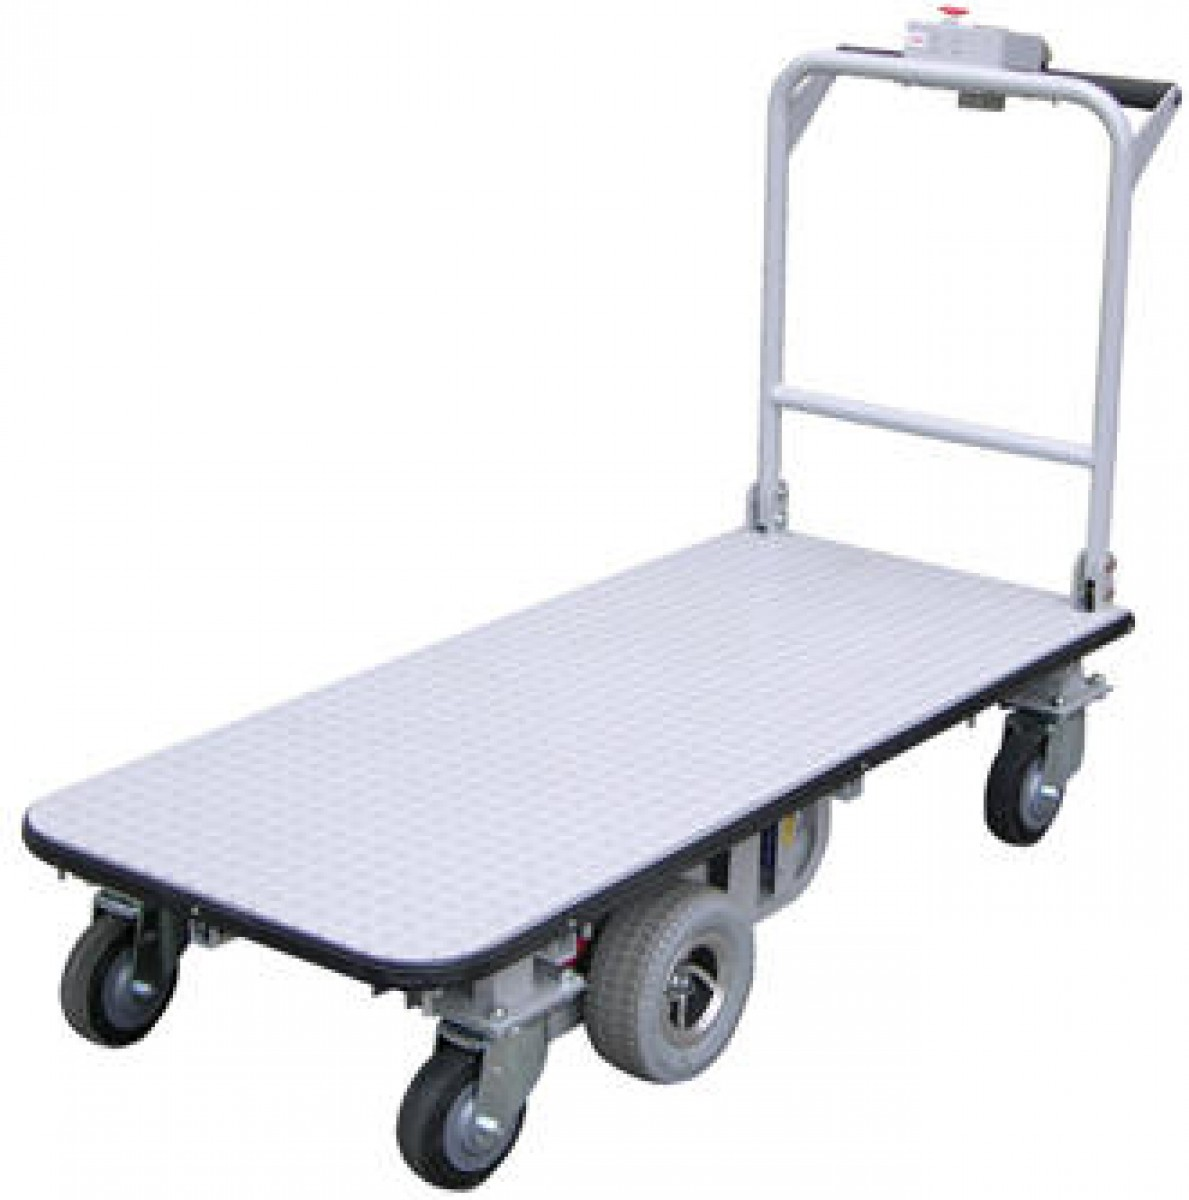 Self Propelled Cart >> Electric Battery Powered Cart, Electric Battery Powered Tugger, Electric Battery Power Pushers ...